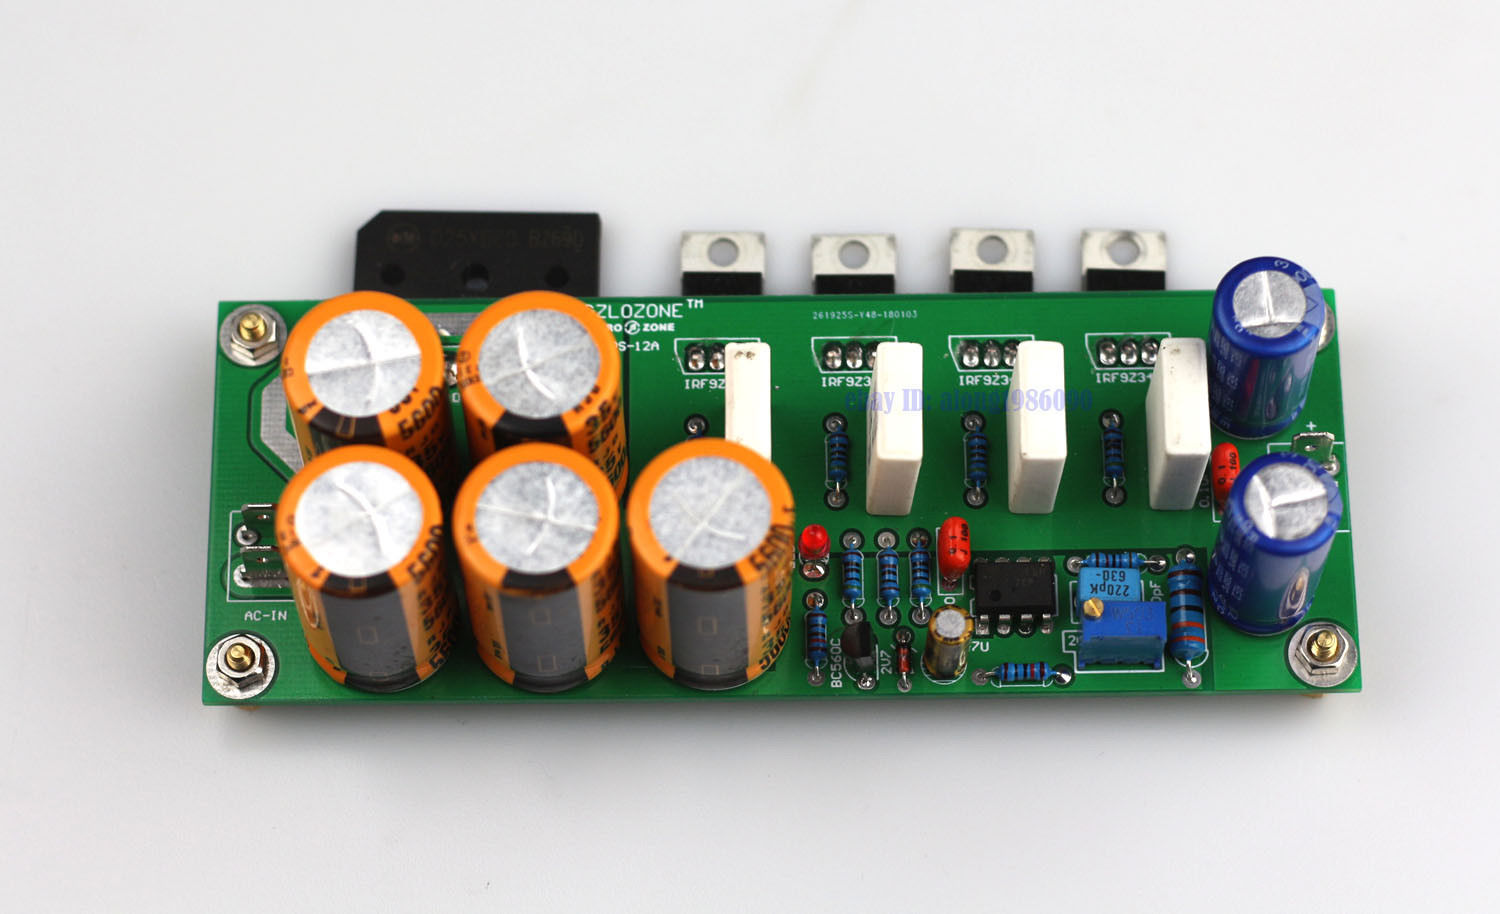 US $30 0 |ZEROZONE (DIY kit )Ultra low noise Linear power supply kit DC5  DC24V adjustable L6 25-in Amplifier from Consumer Electronics on